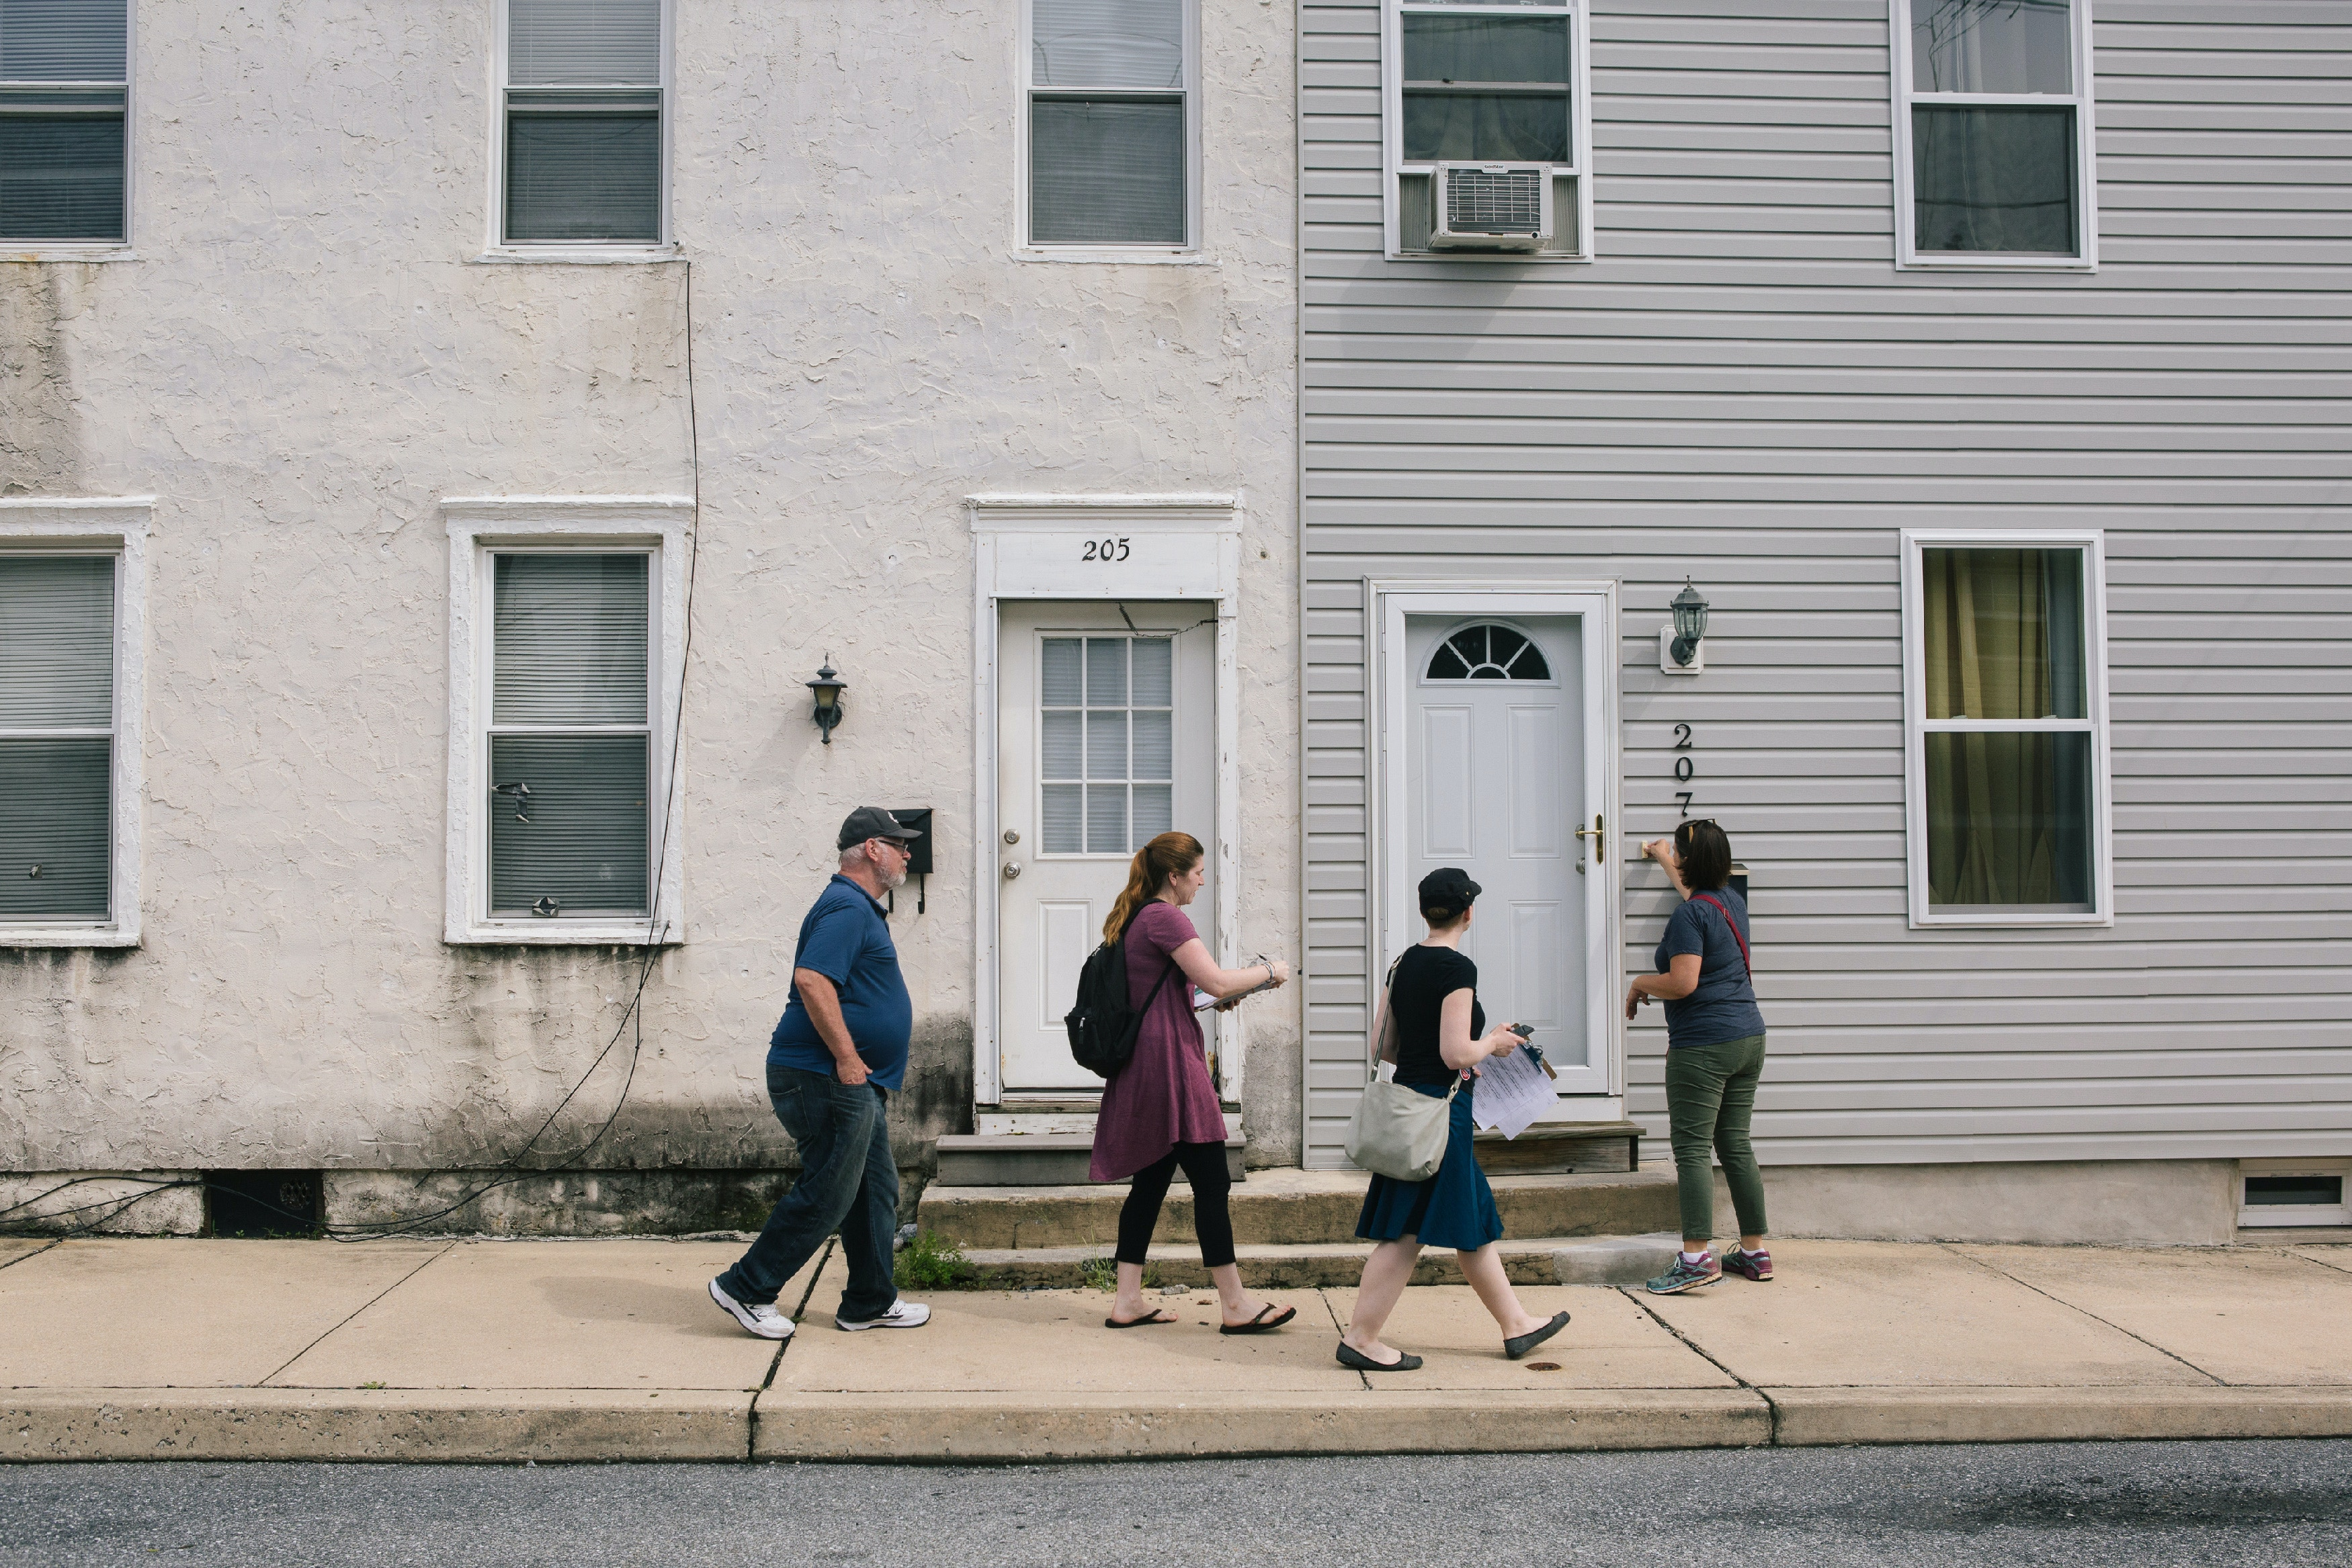 Jess King (far right), a first-time Congressional candidate, canvasses with campaign volunteers in Mount Joy, Pennsylvania on Saturday, August 18, 2018. King, who lives in nearby Lancaster, is running for Congress in Pennsylvania's 11th District.(Michelle Gustafson for The Intercept)